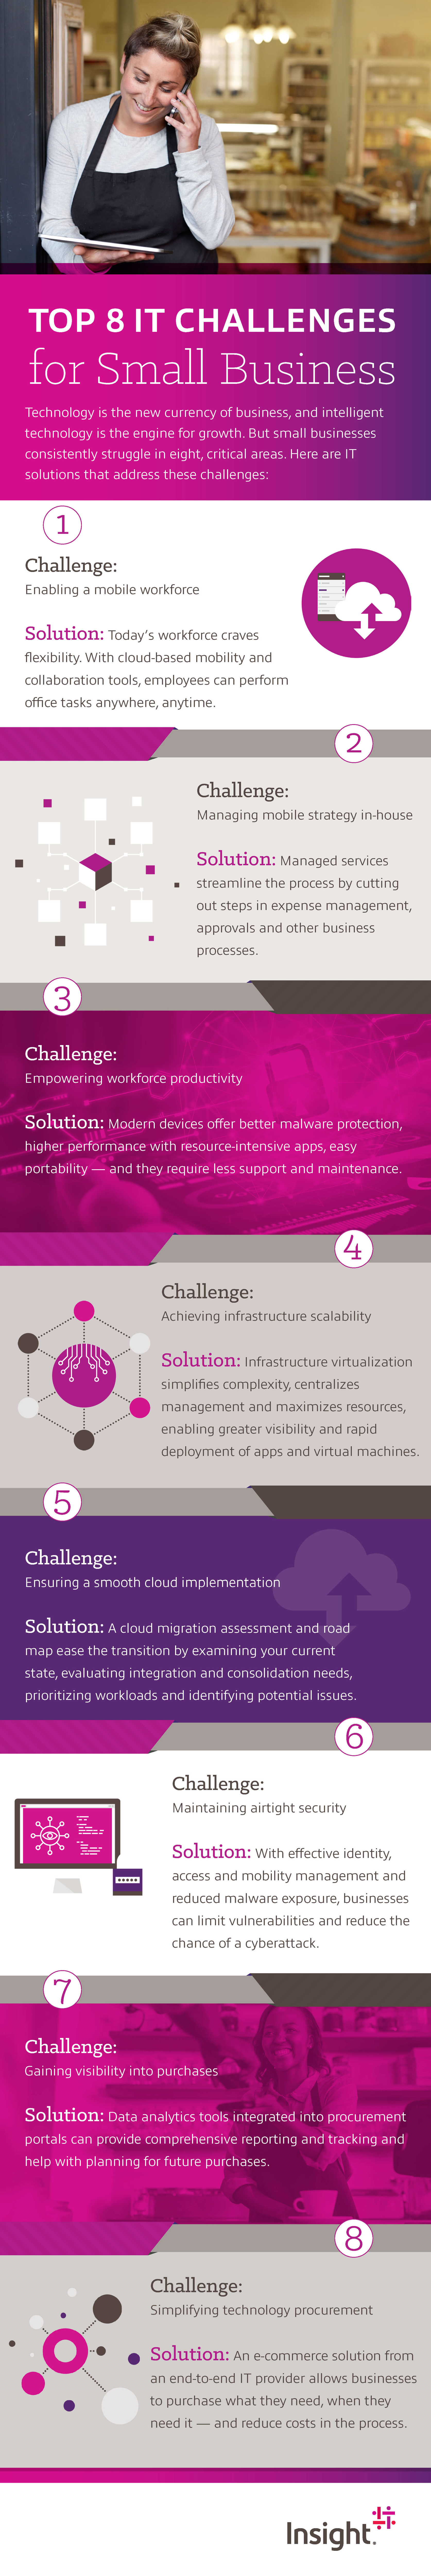 Infographic displaying Top 8 IT Challenges for Small Business. Translated below.